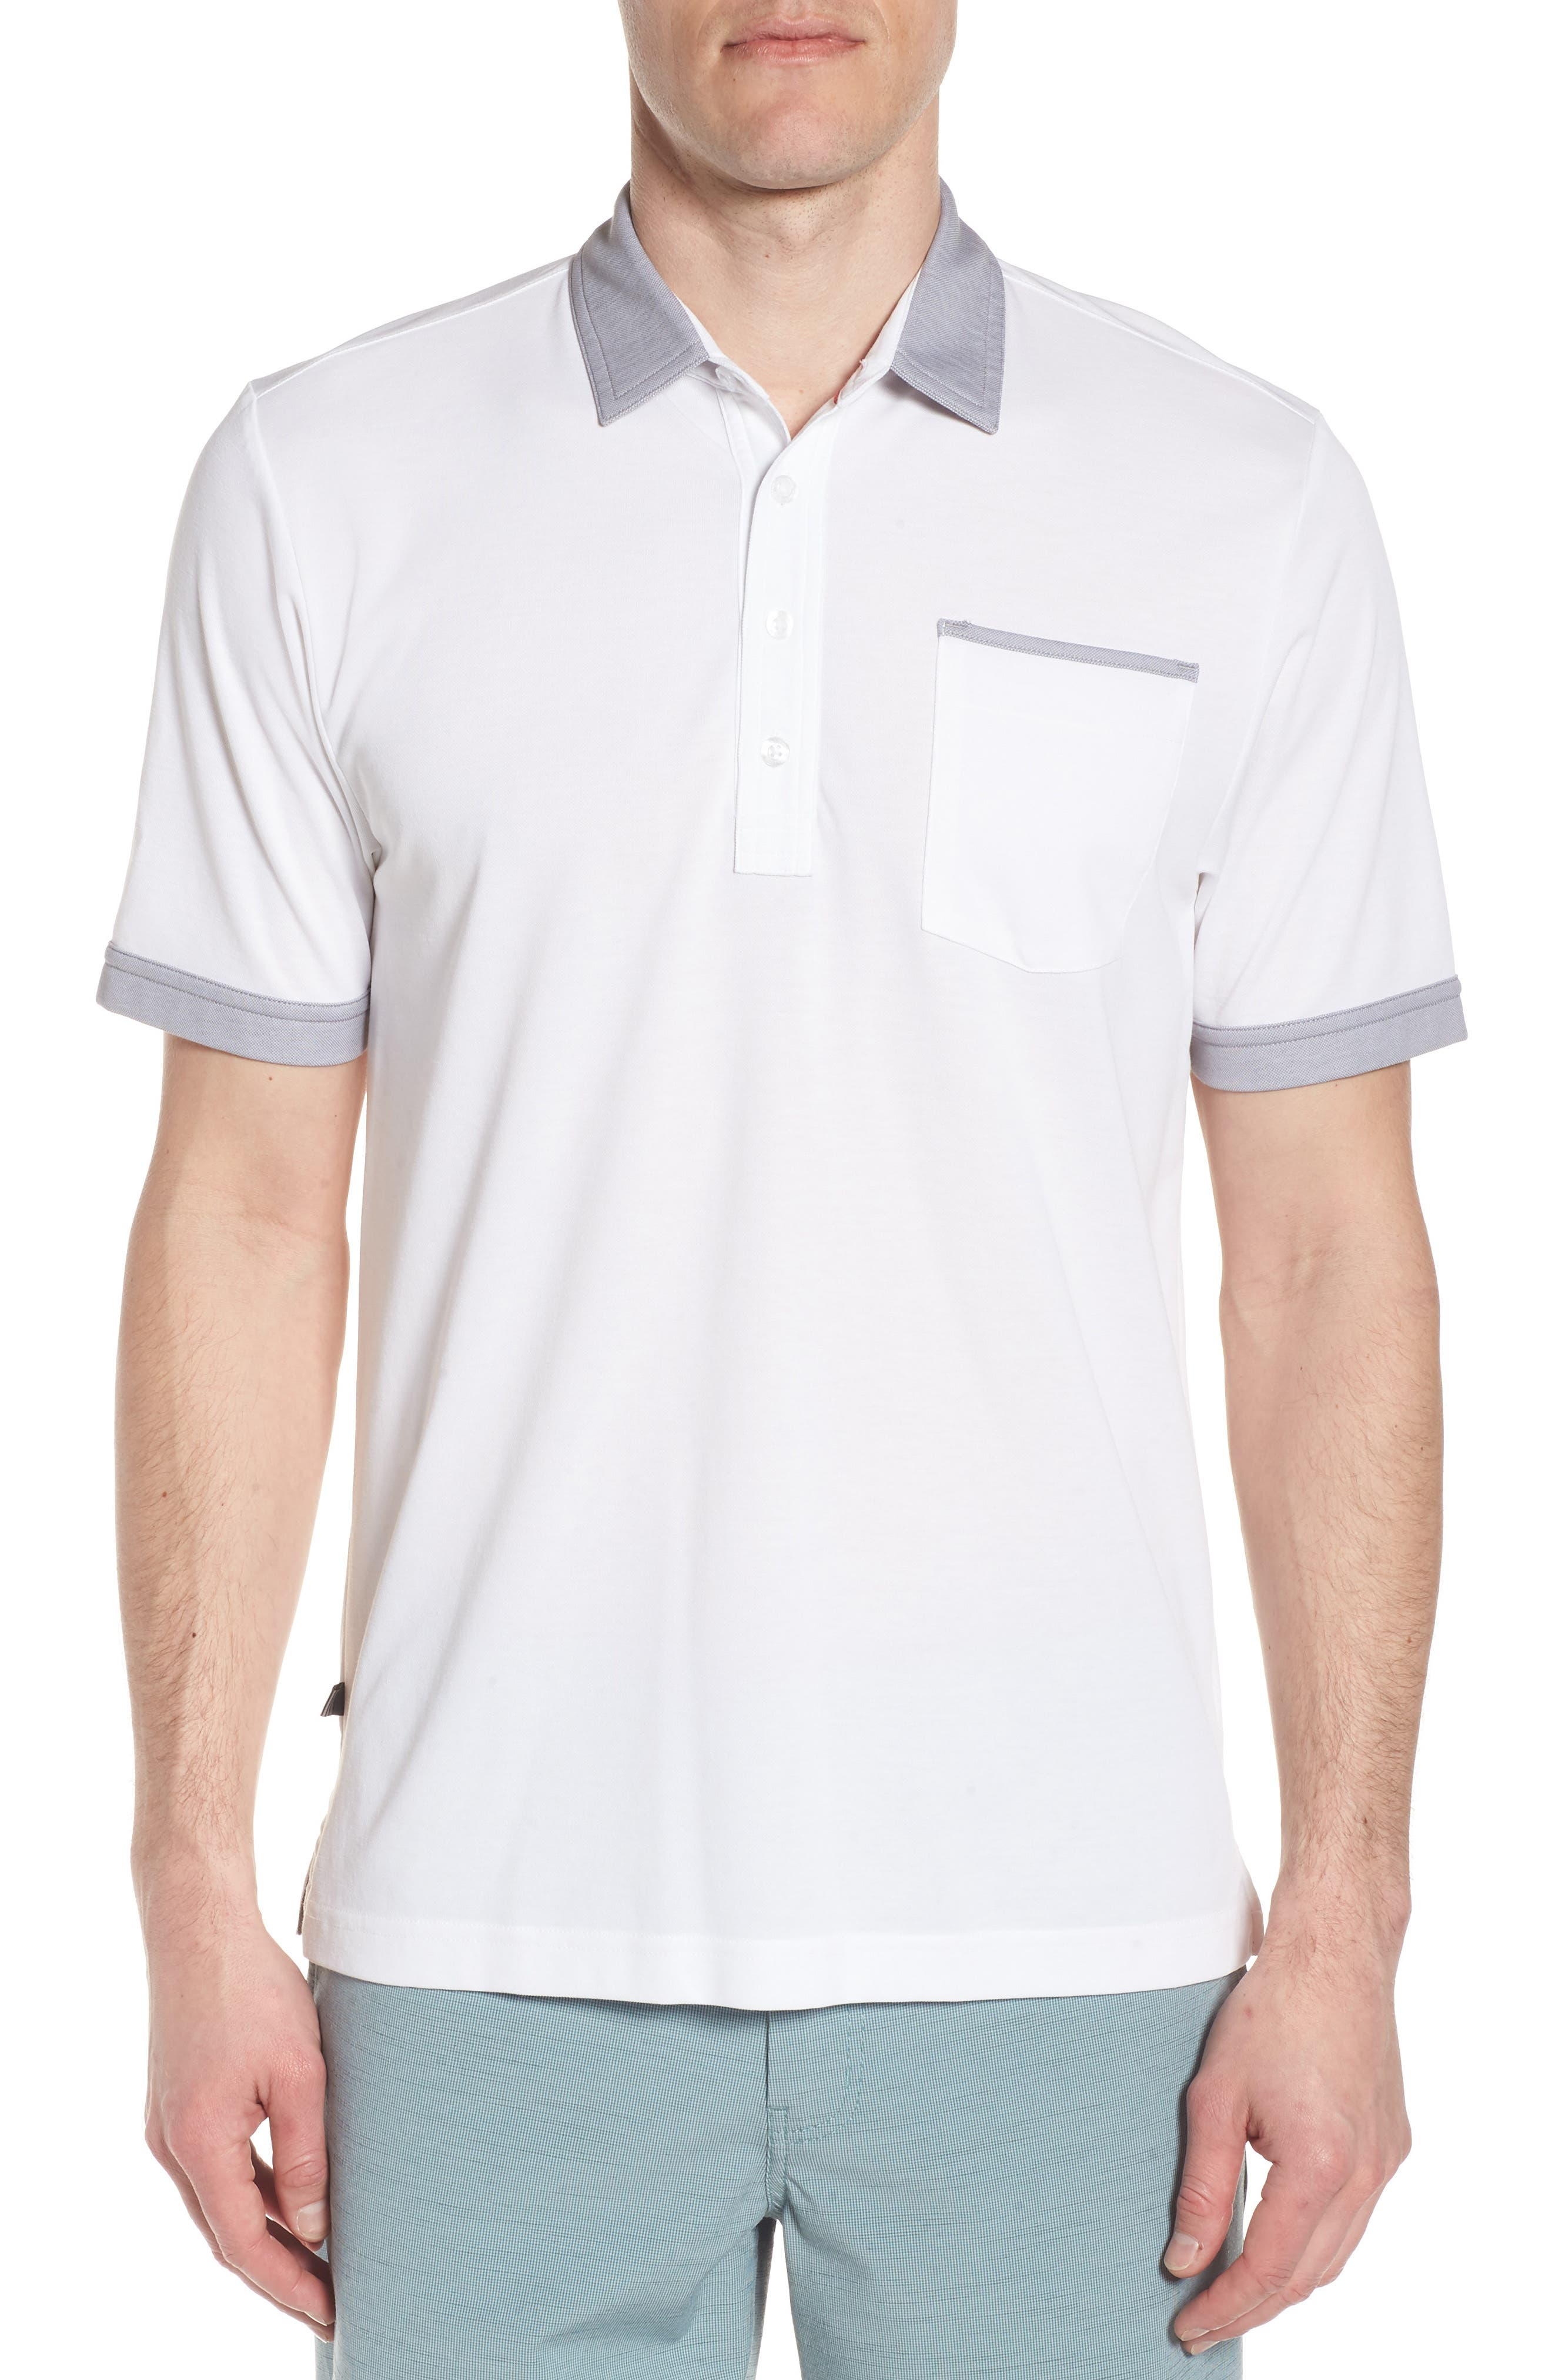 K-Lew Piqué Polo,                             Main thumbnail 1, color,                             White